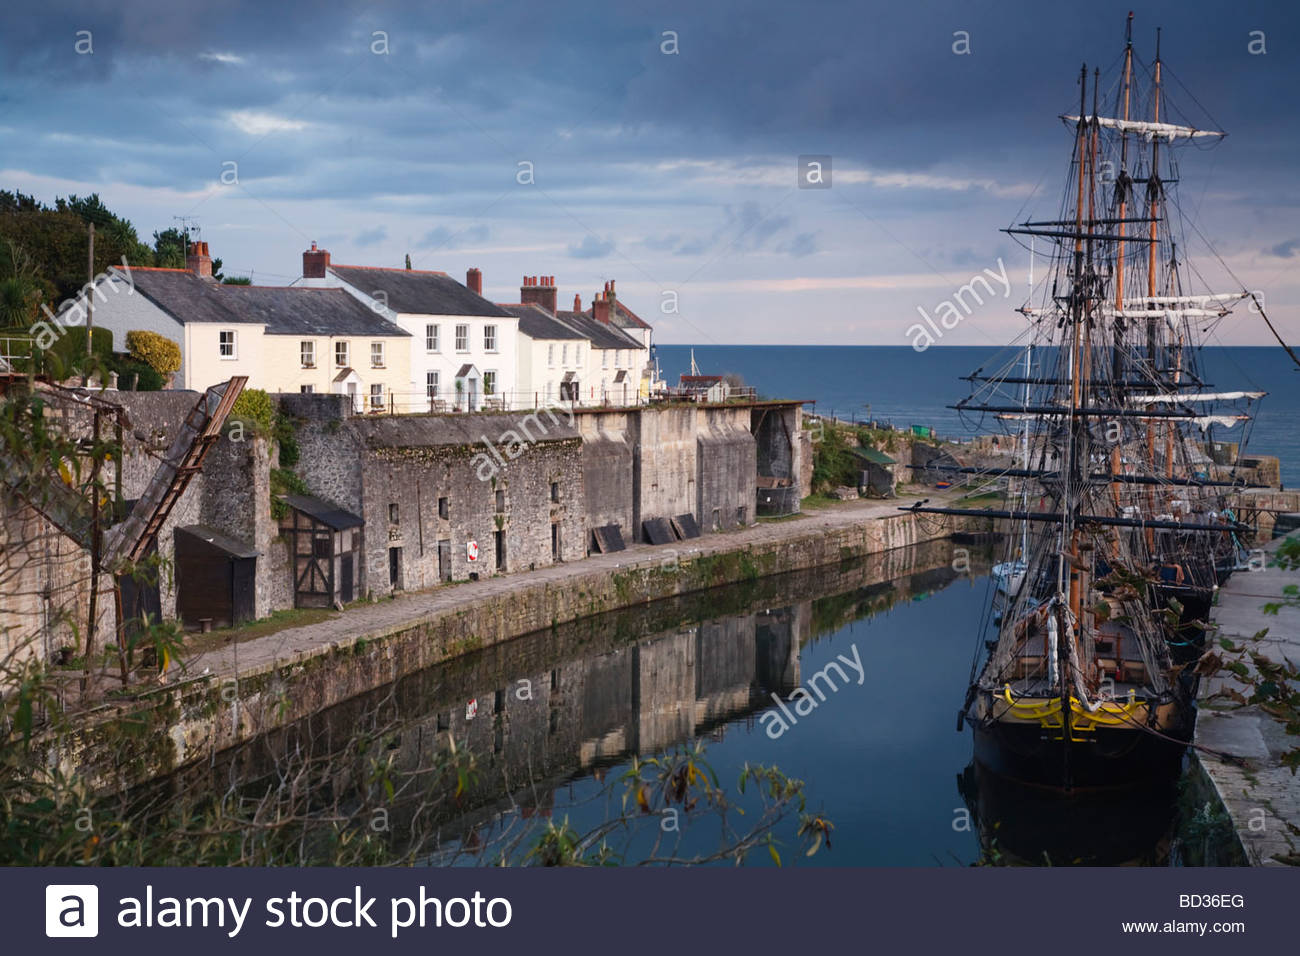 Tall ships docked in historic Charlestown Harbour on the coast of Cornwall, England Stock Photo